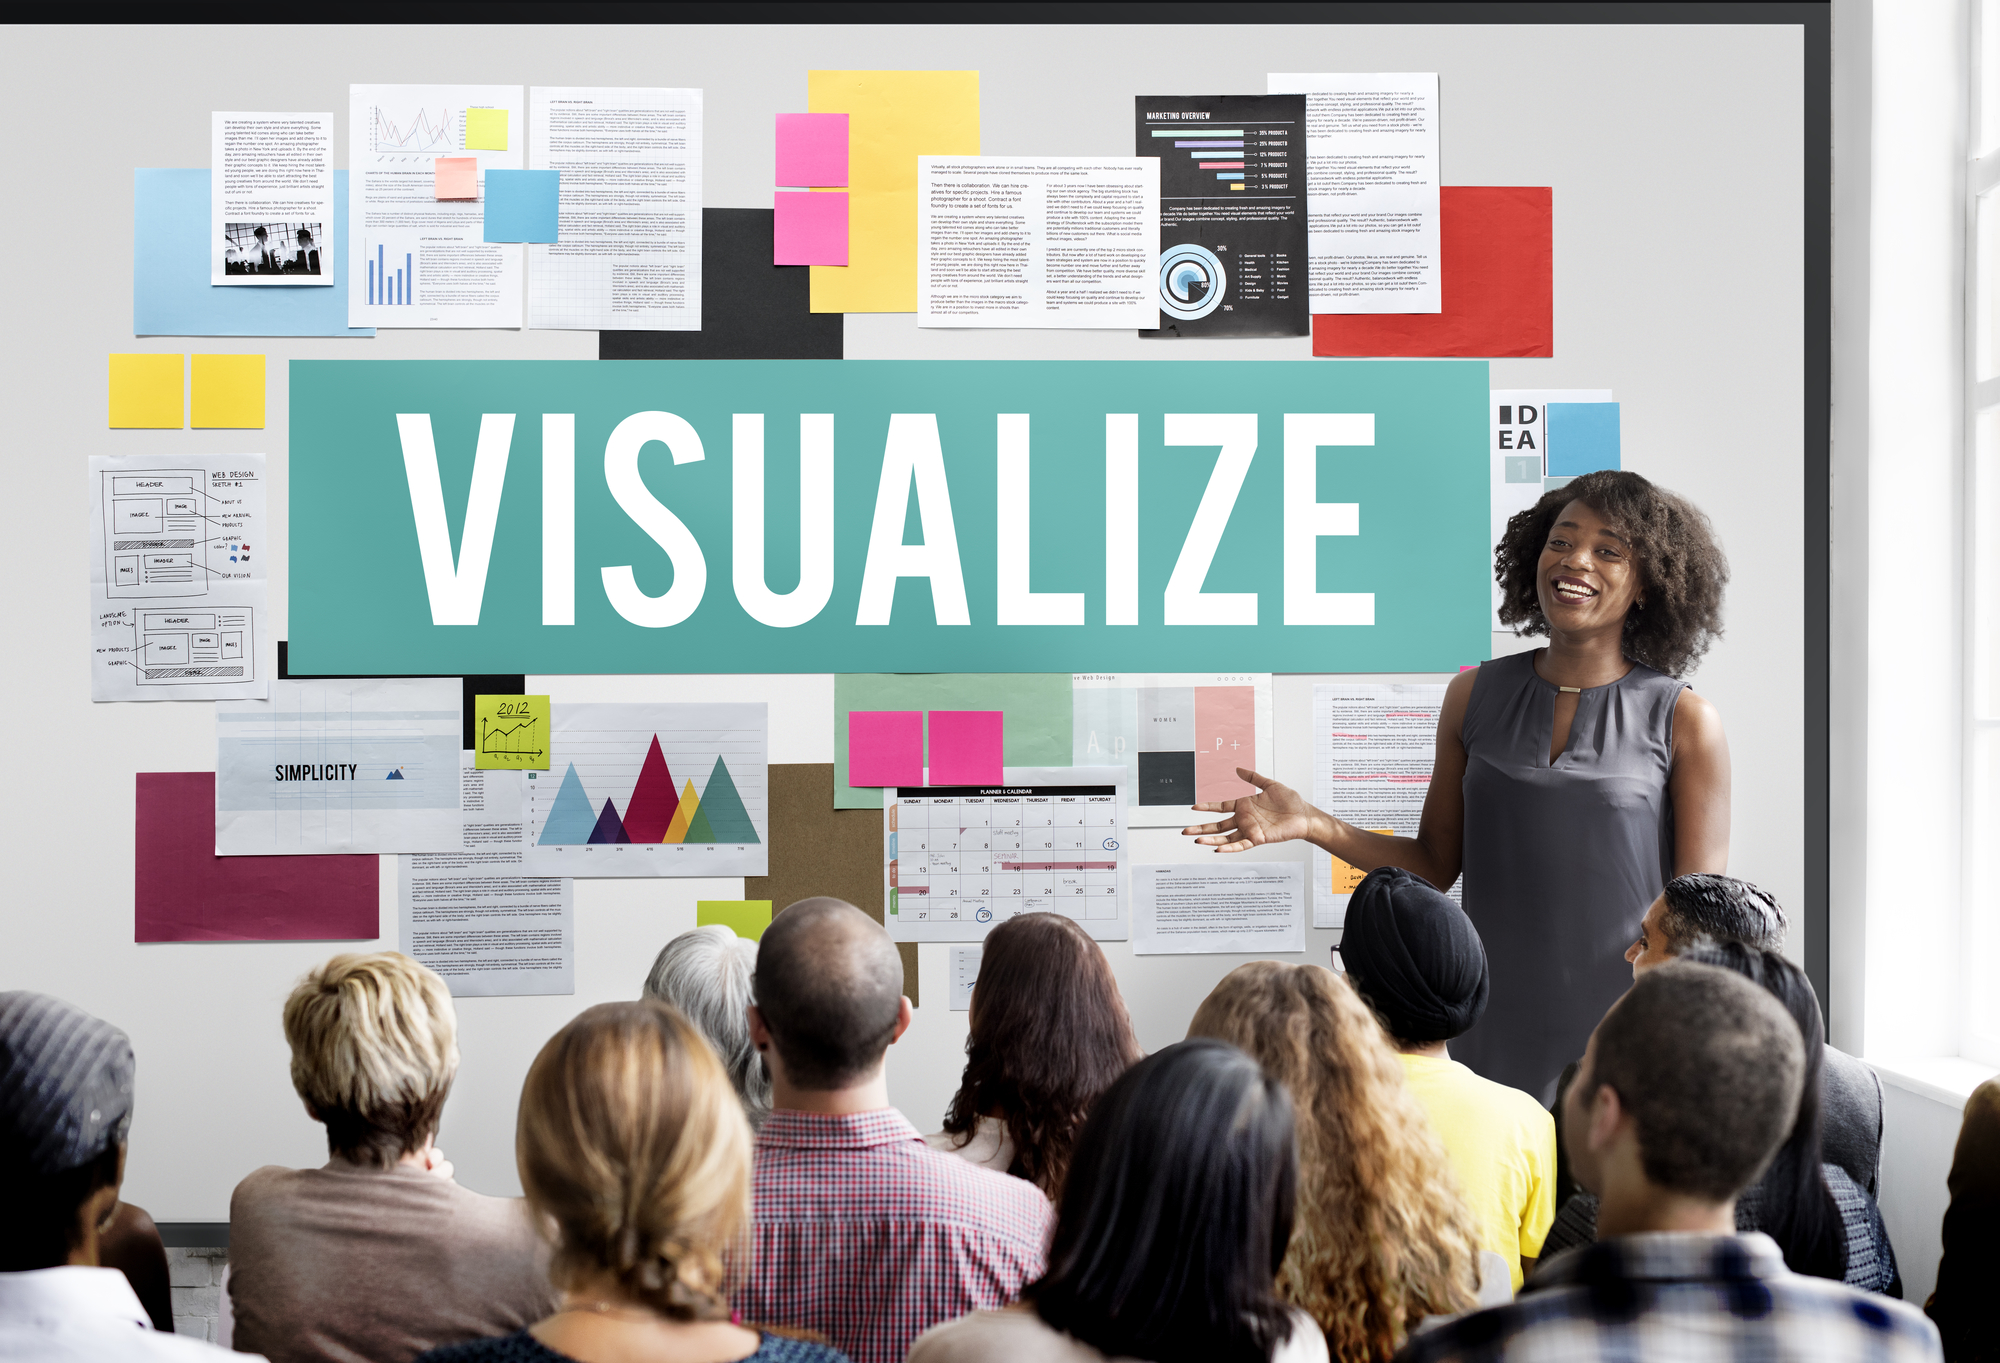 Why Are Visual Aids So Important in Presentations?